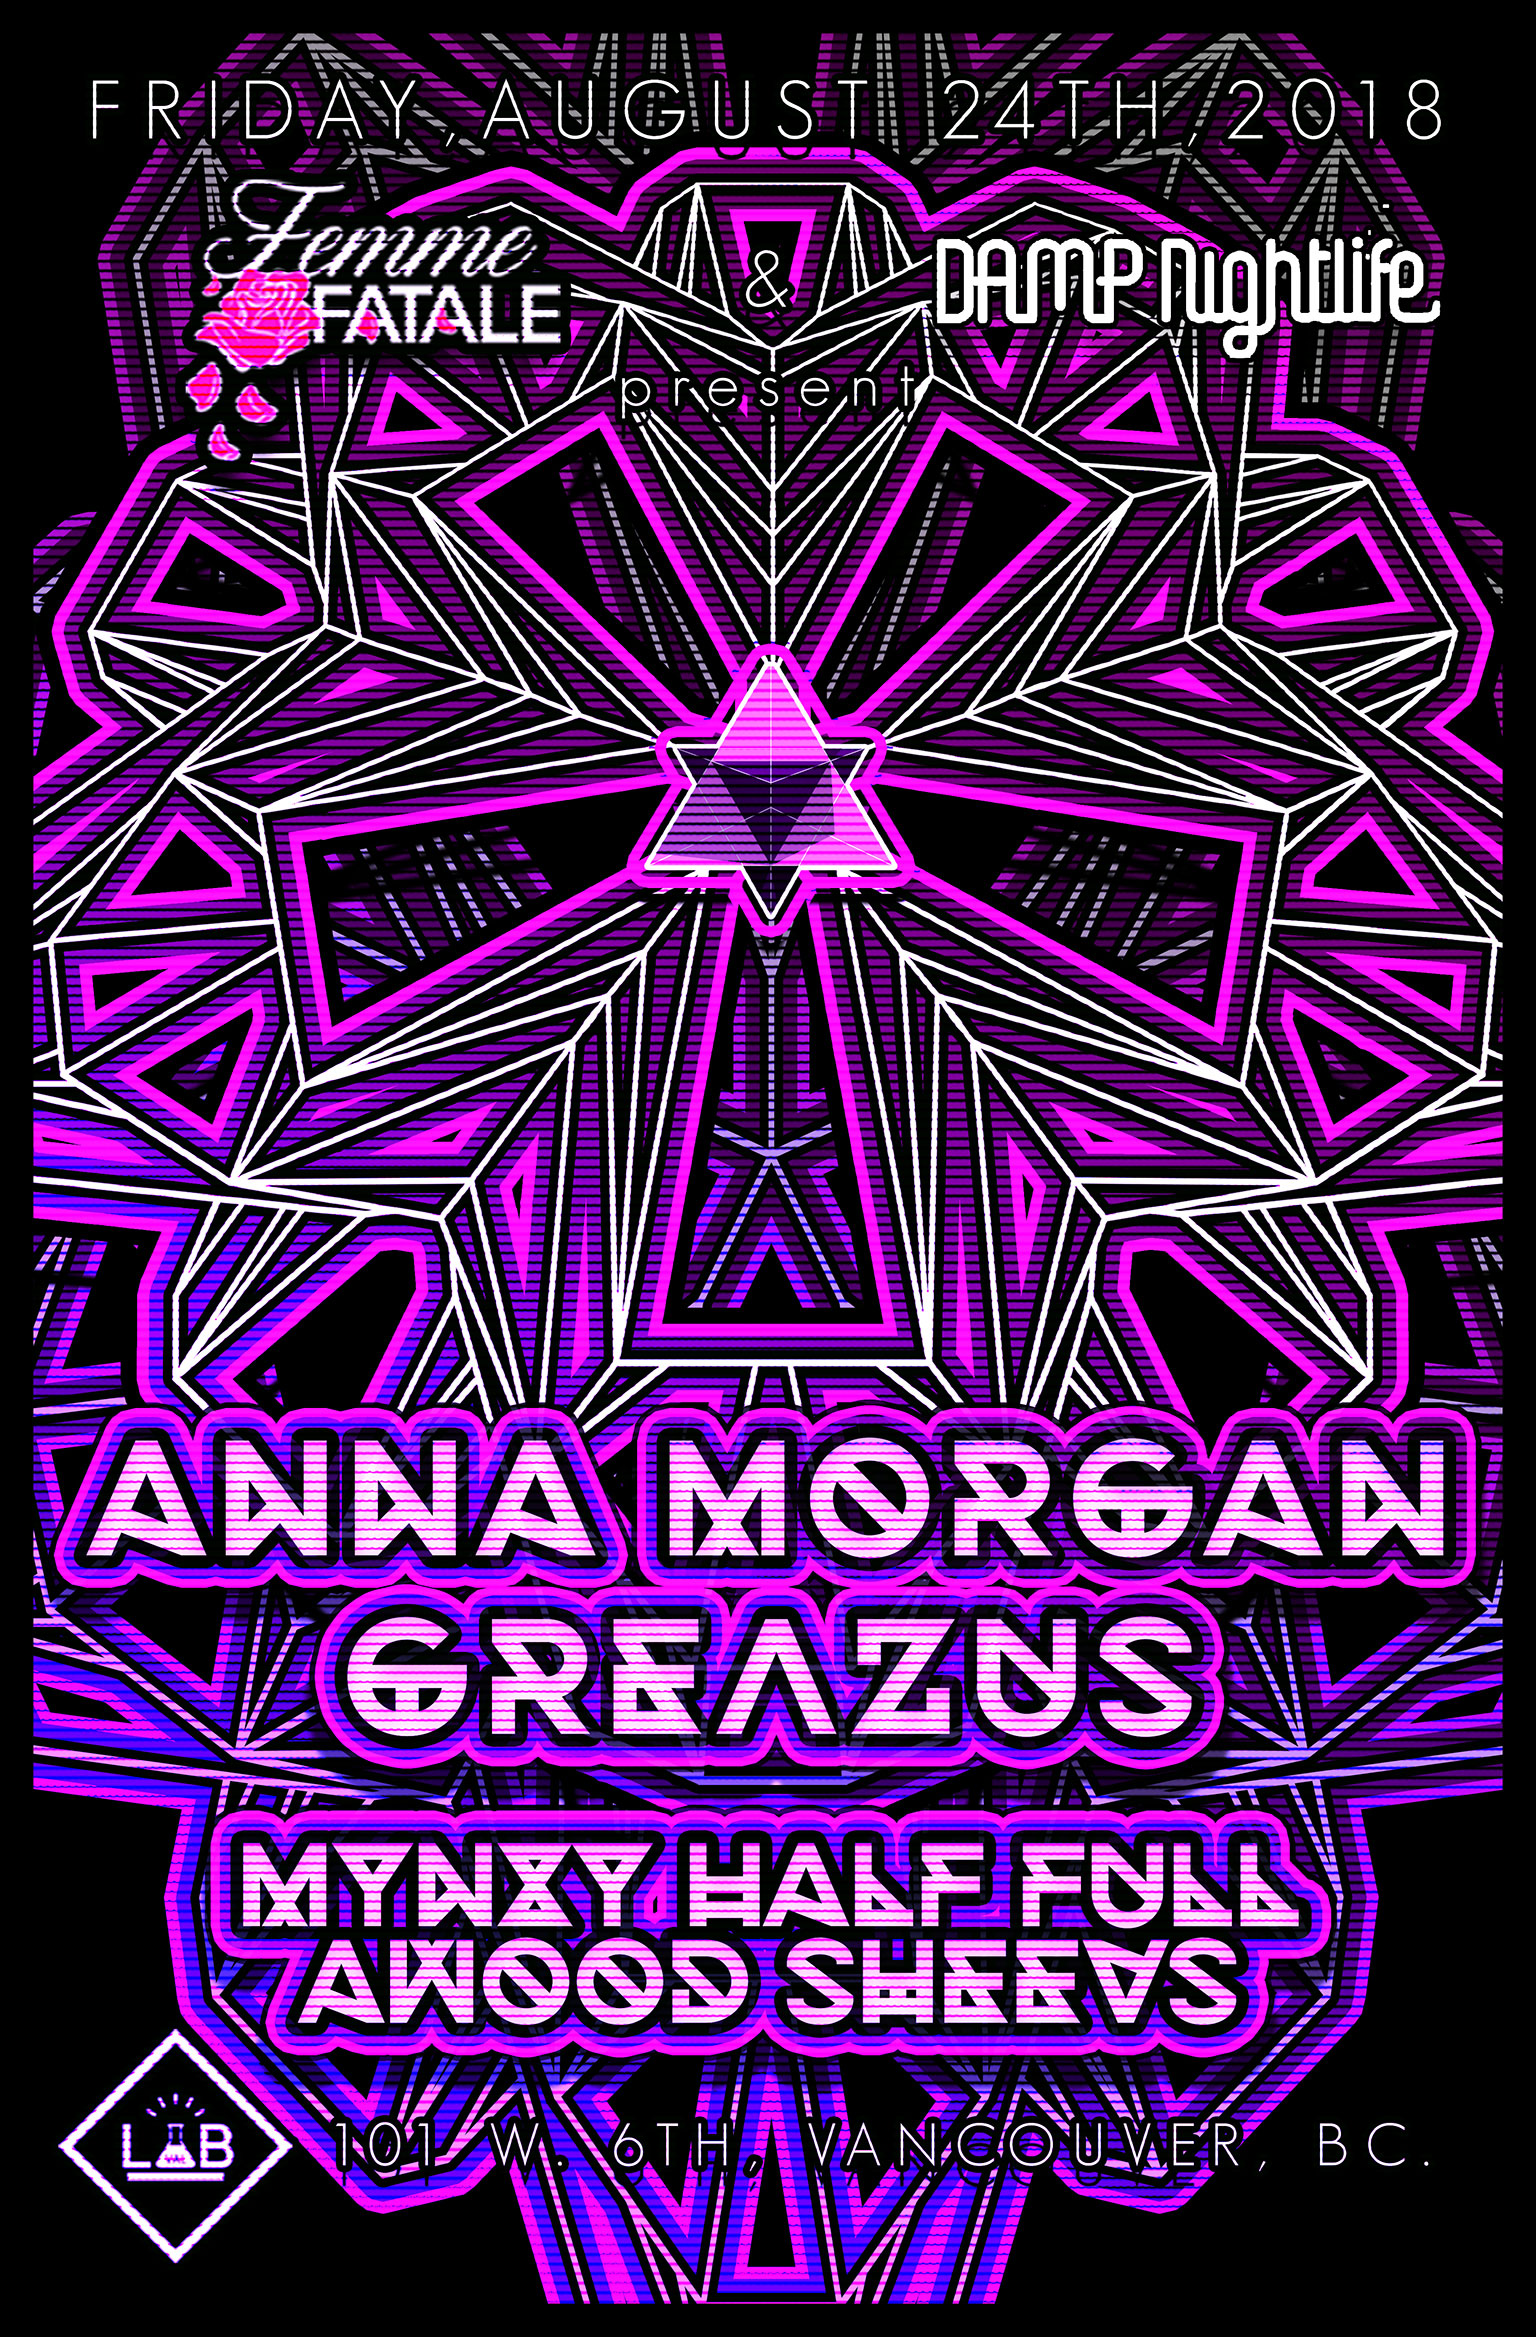 Femme Fatale & Damp Nightlife pres: Anna Morgan x Greazus